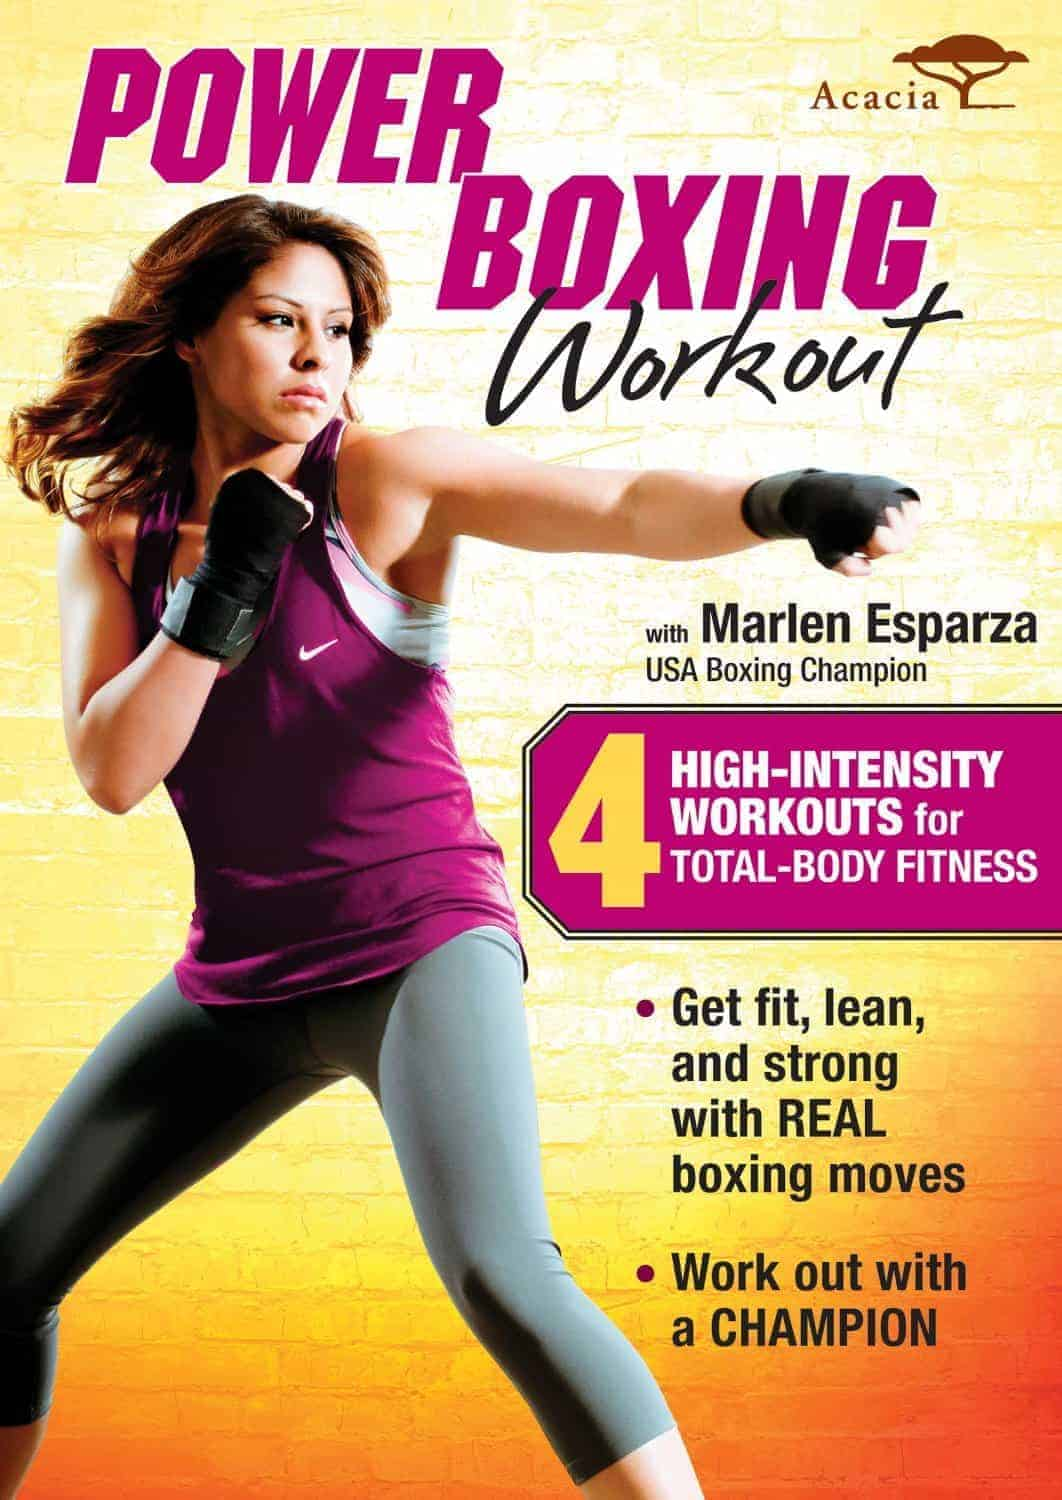 Power Boxing Workout Review